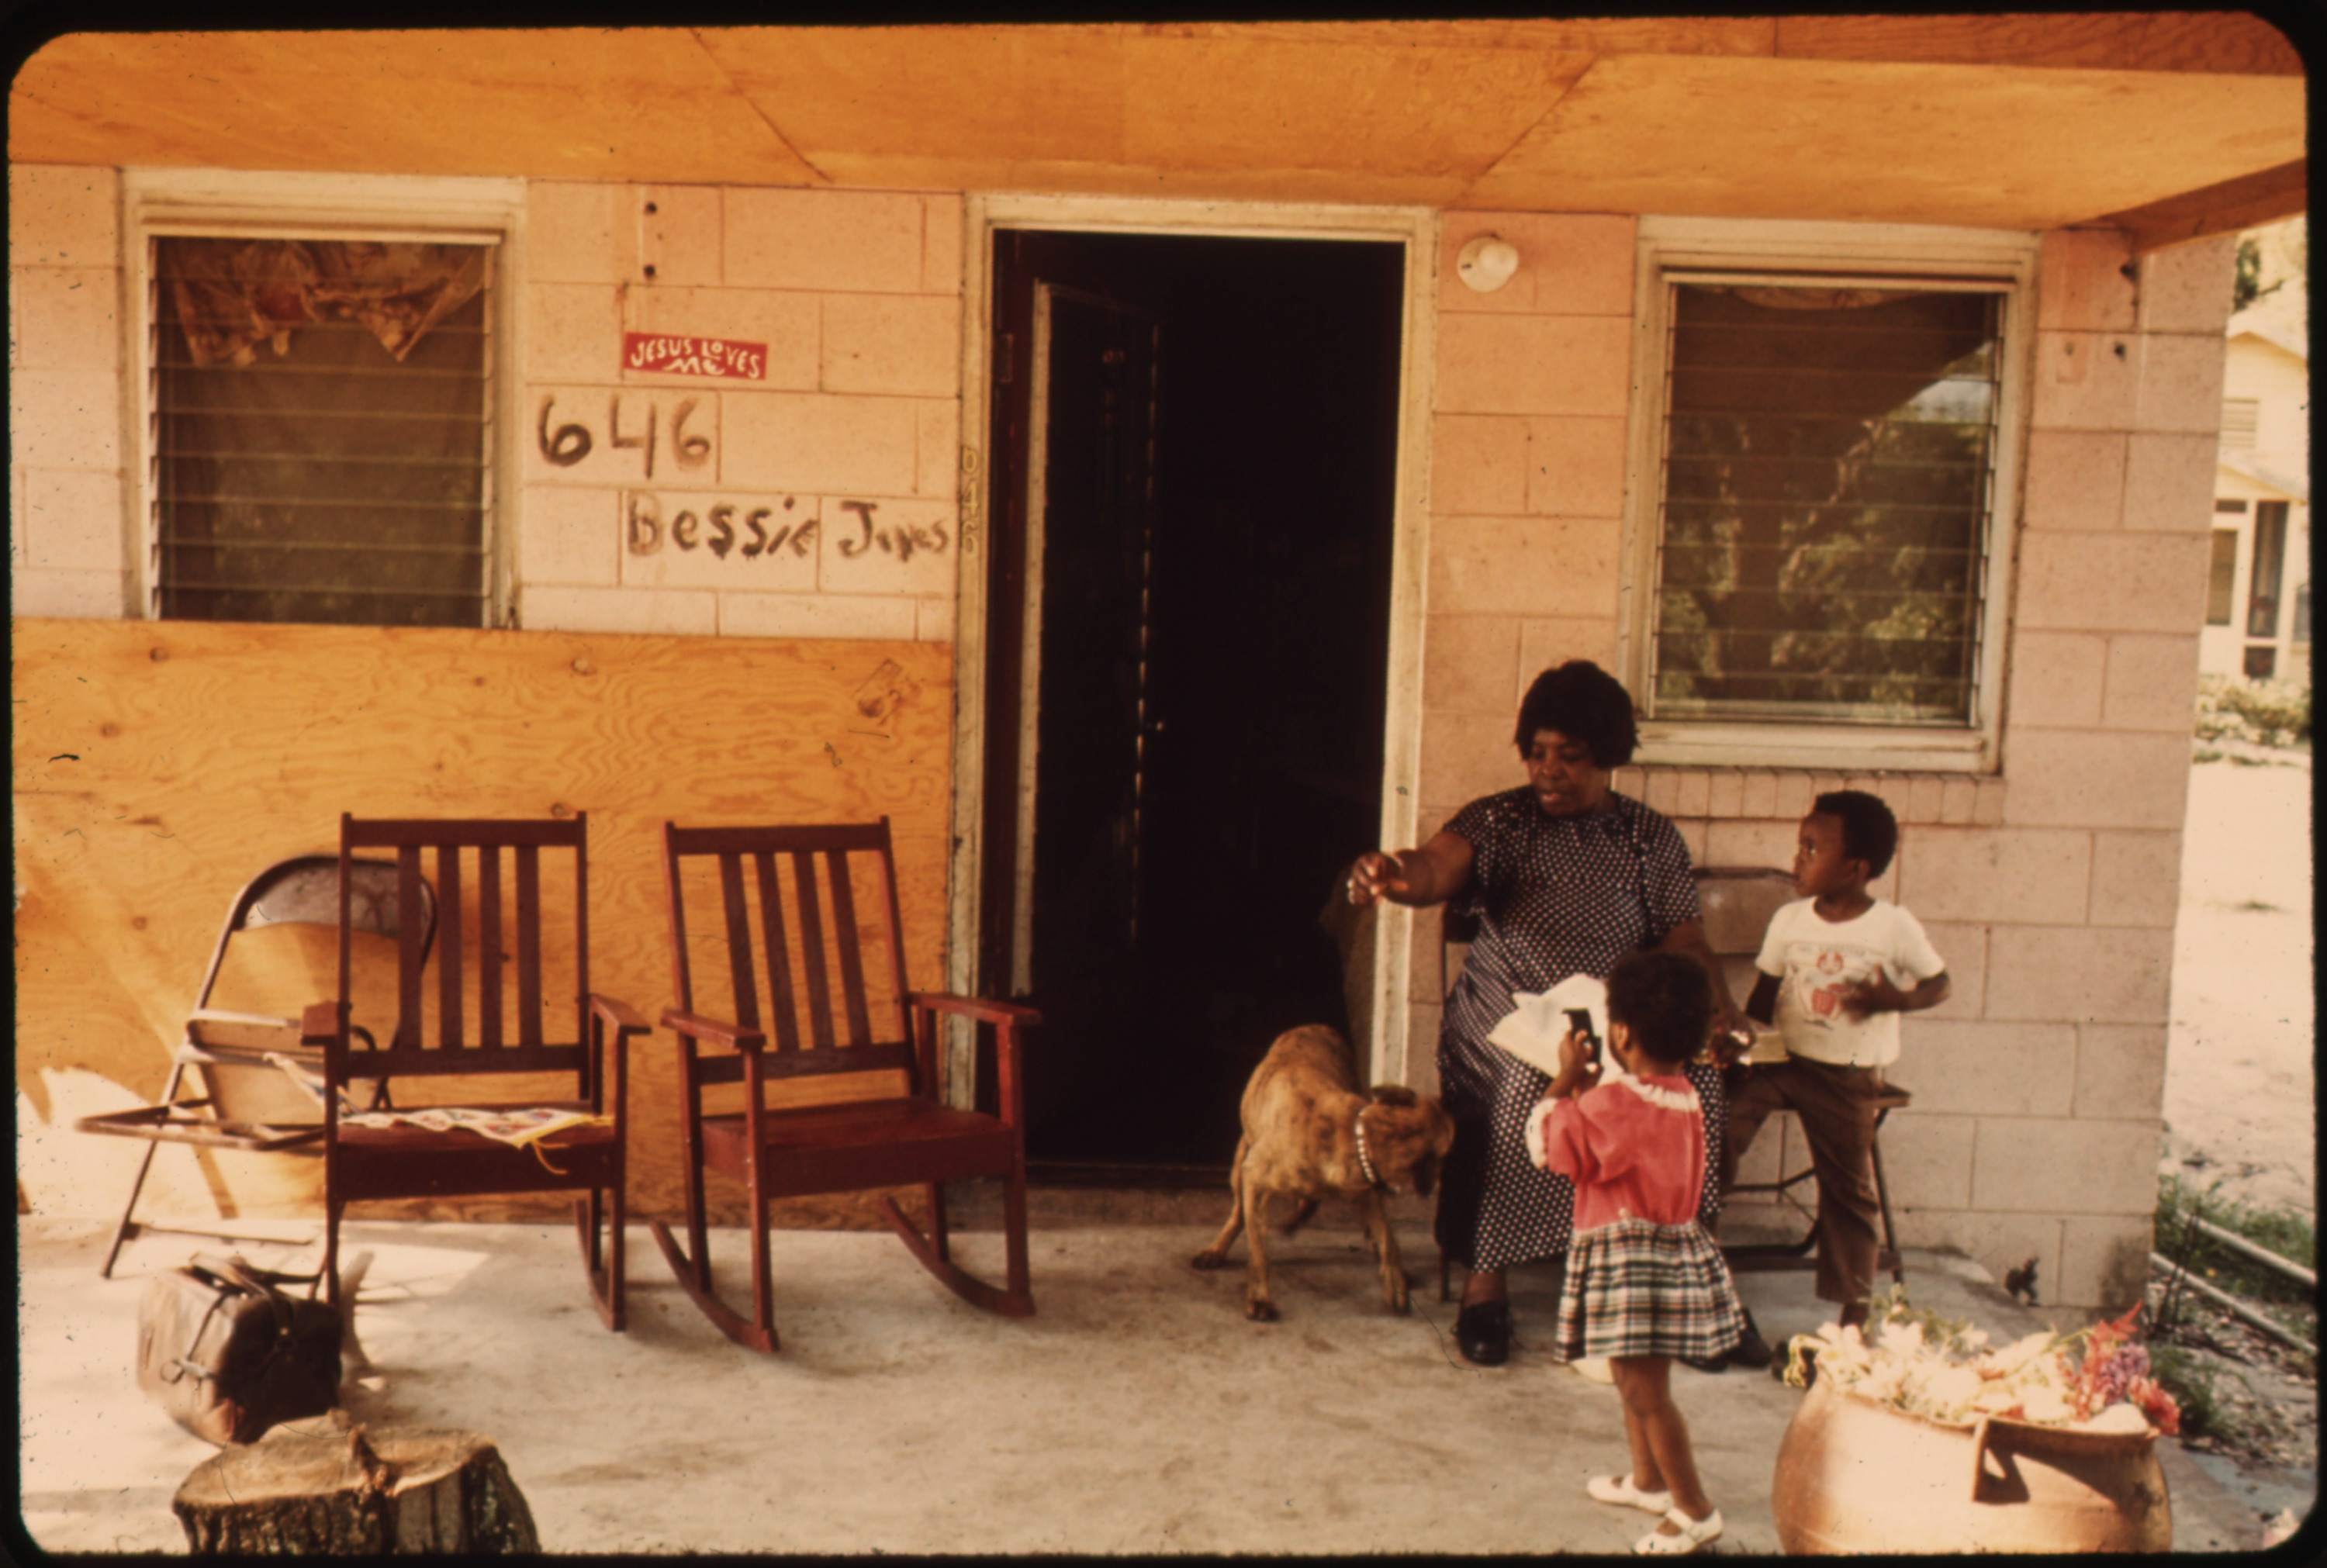 Bessie Jones at home on St. Simons Island with two great-grandchildren - photograph by Paul Conklin, 1973 - NARA - public domain